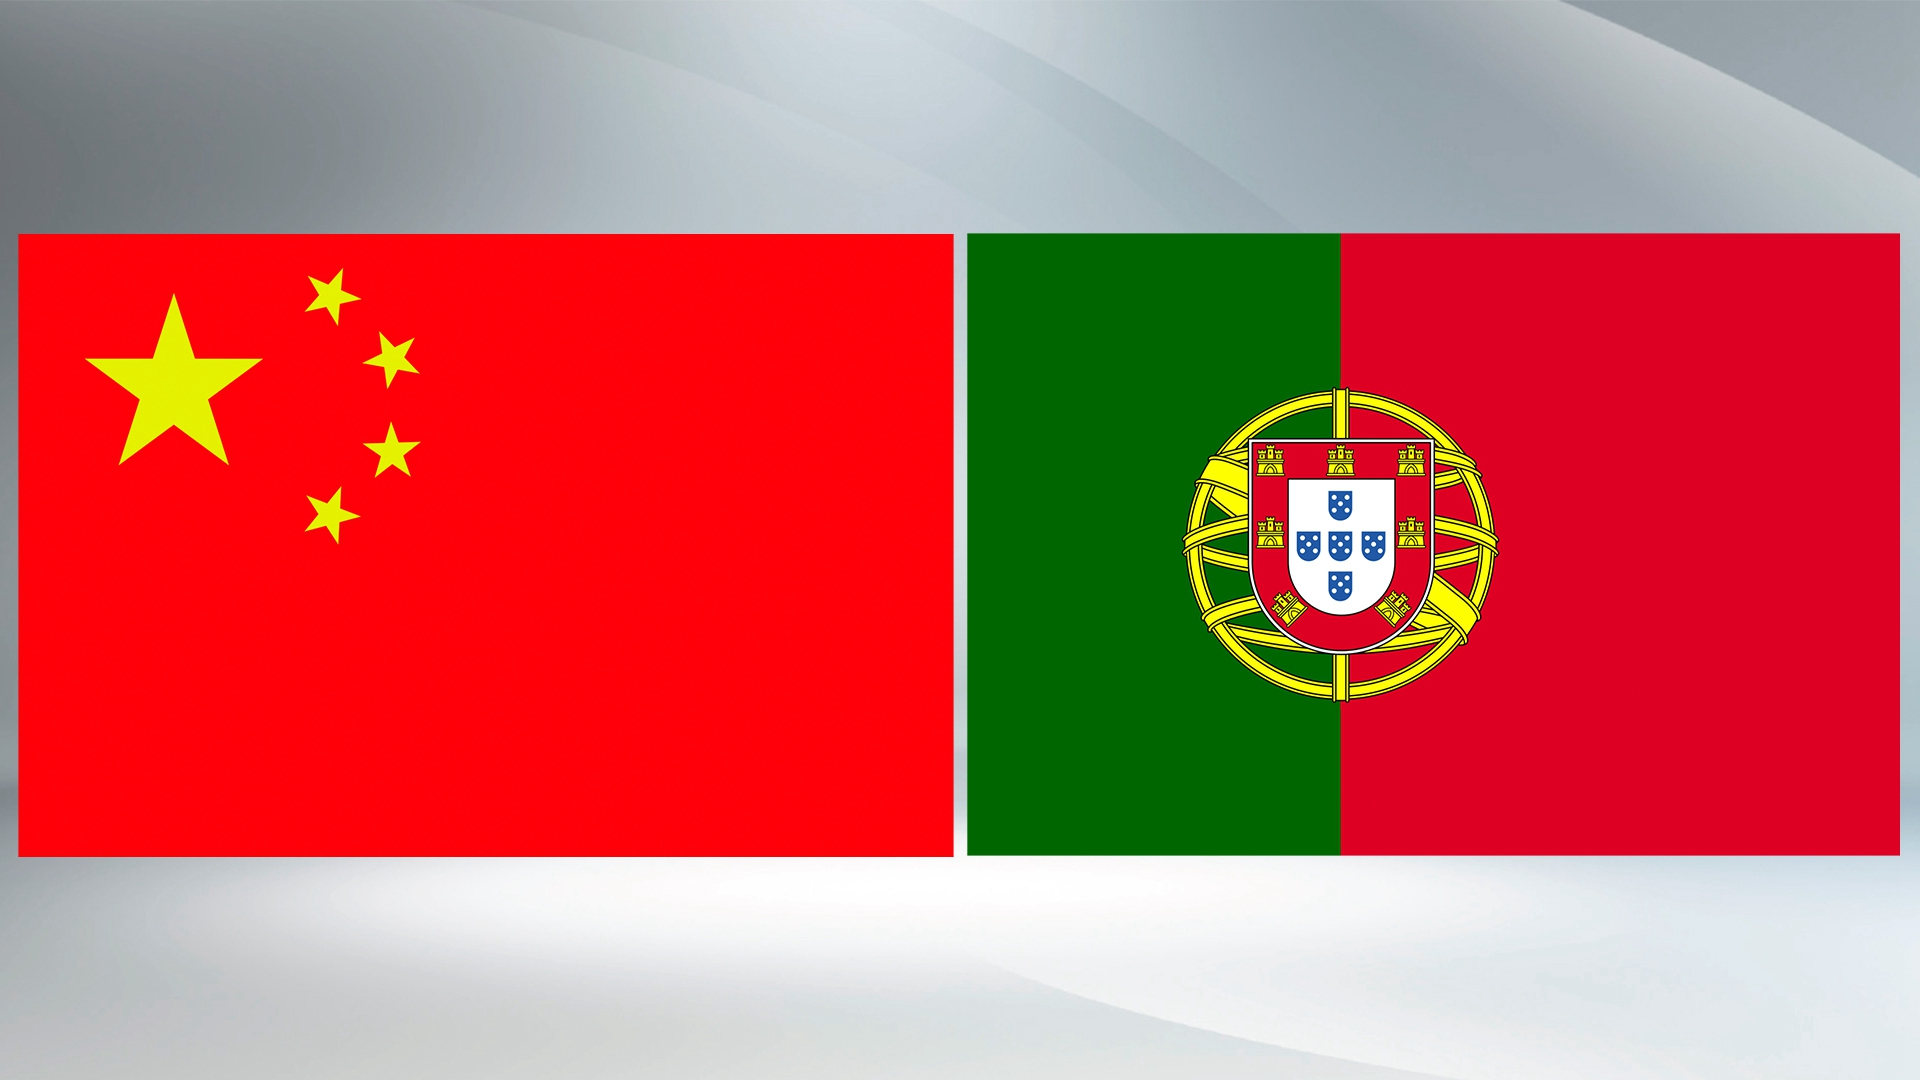 No doubts for China-Portugal relations